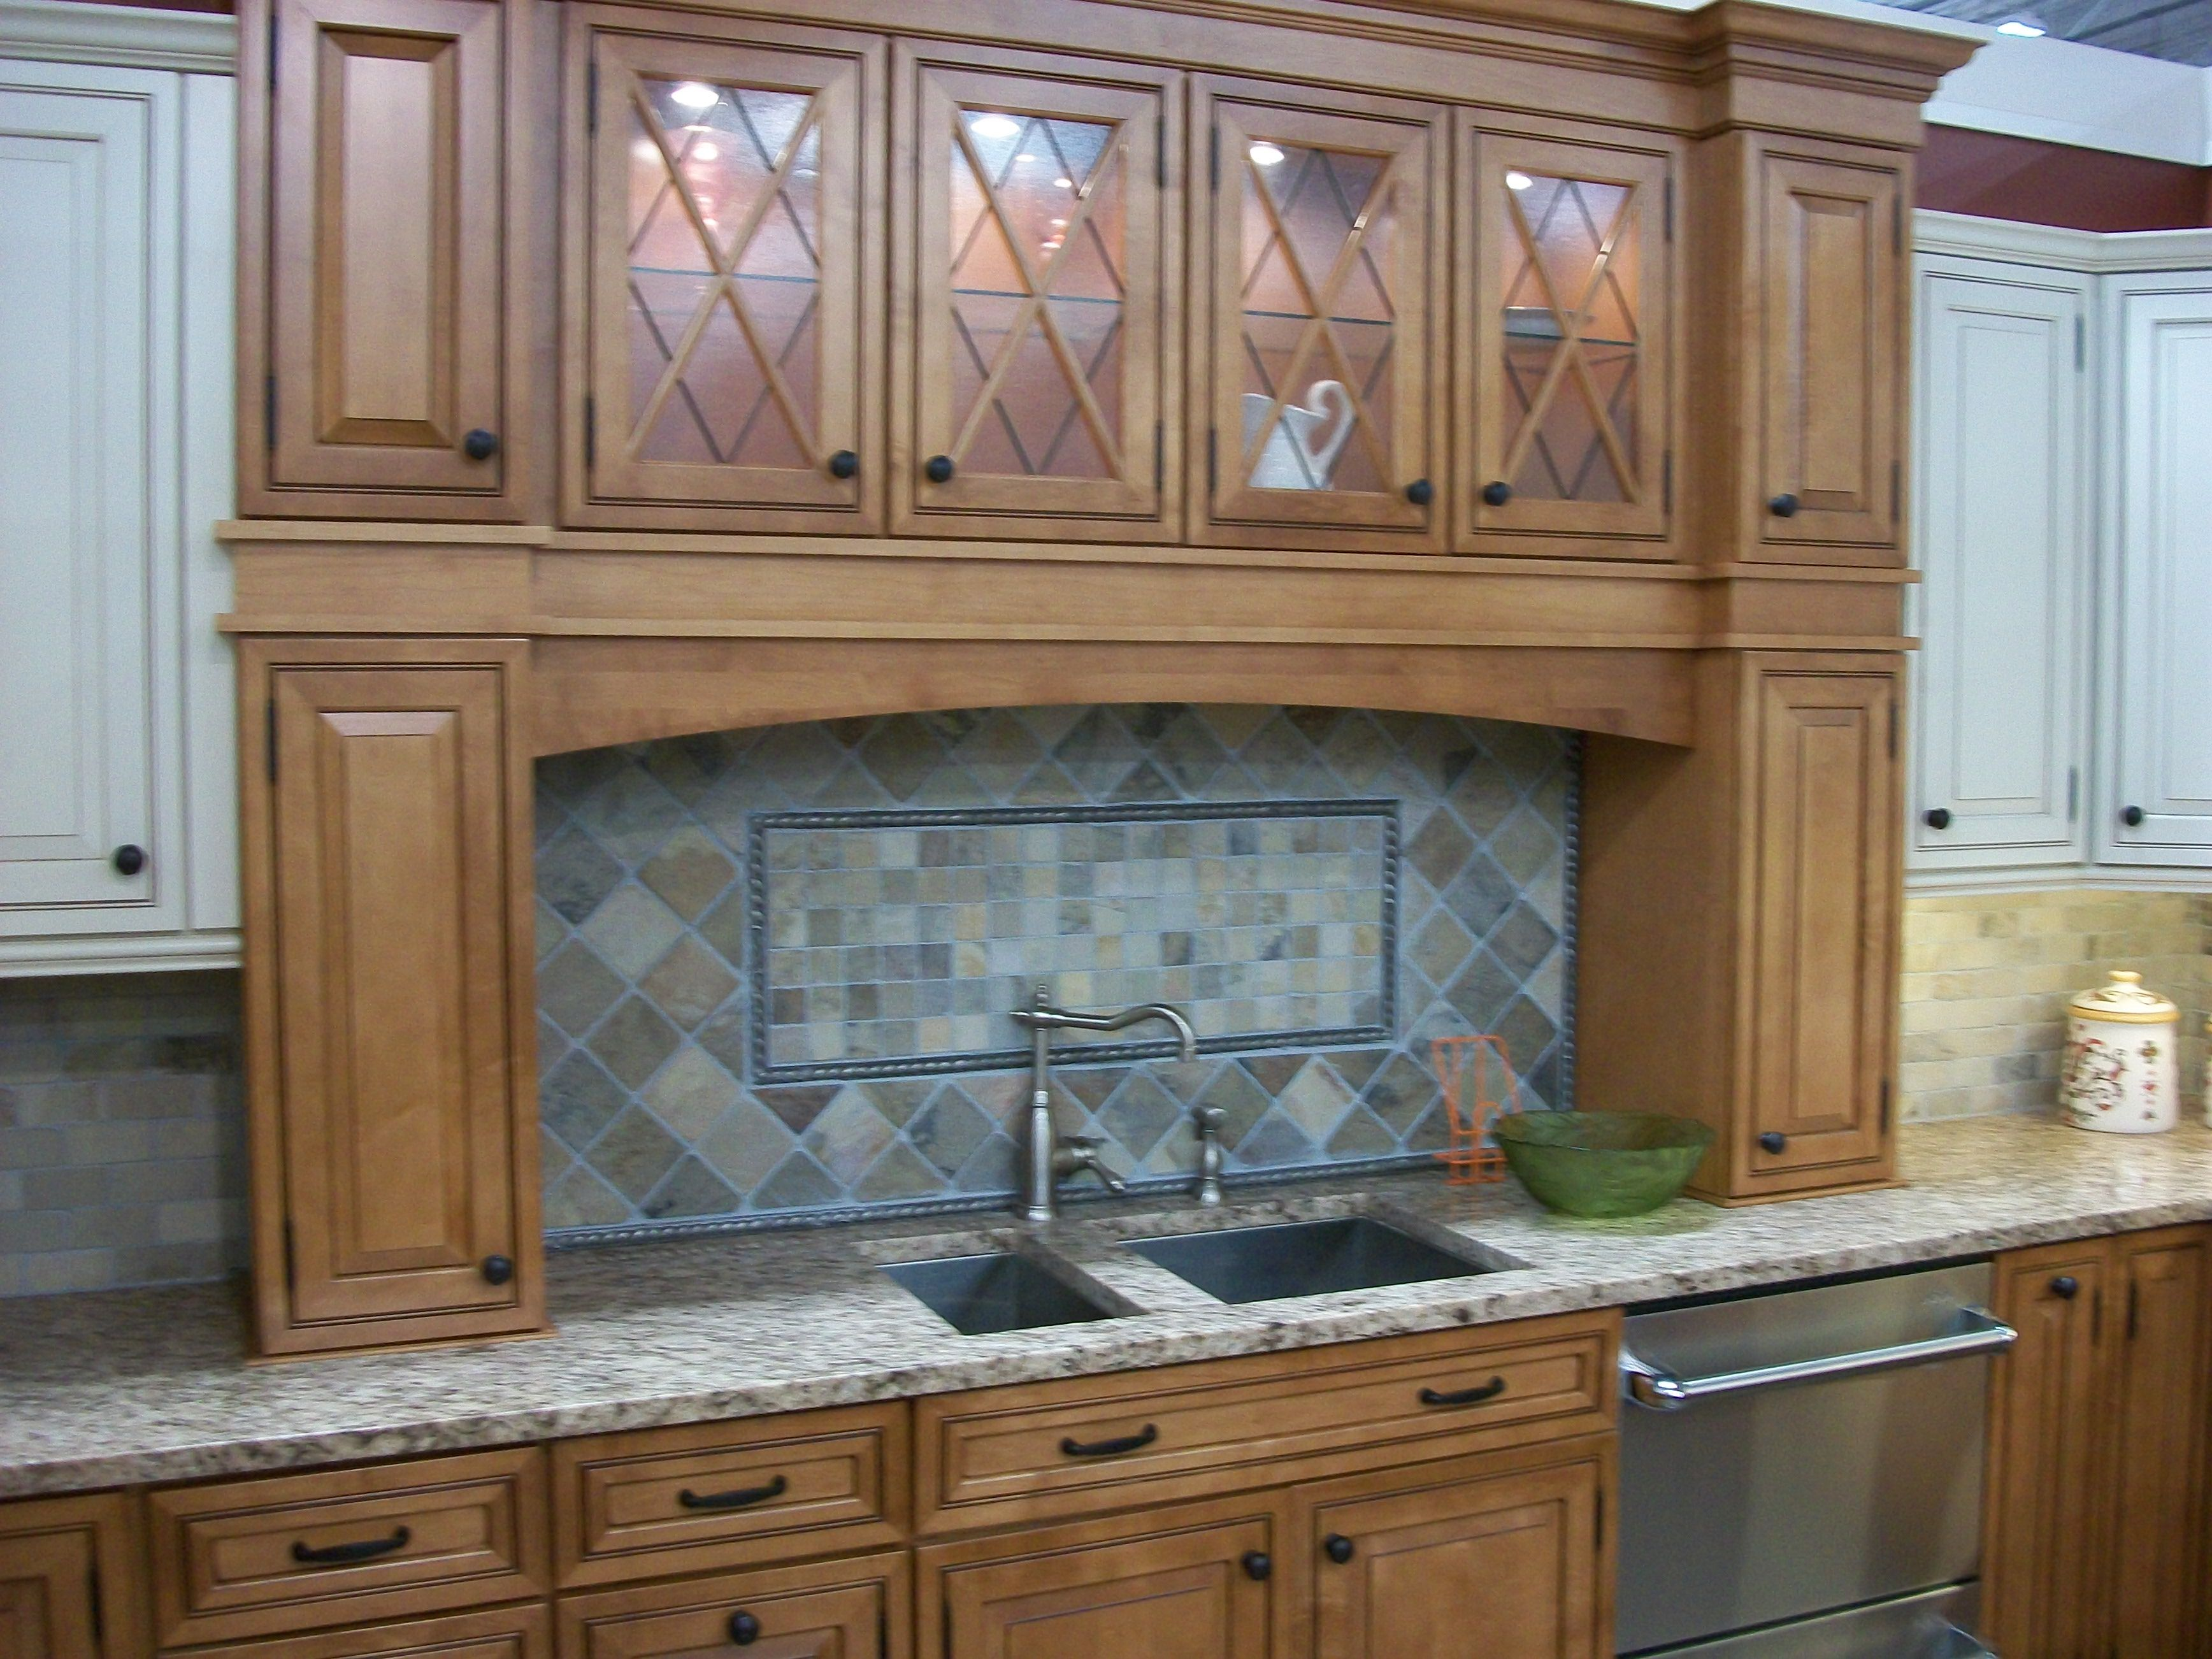 Kitchen Remodeling Take Your Kitchen To The Next Level With - How to get your kitchen remodeled for free